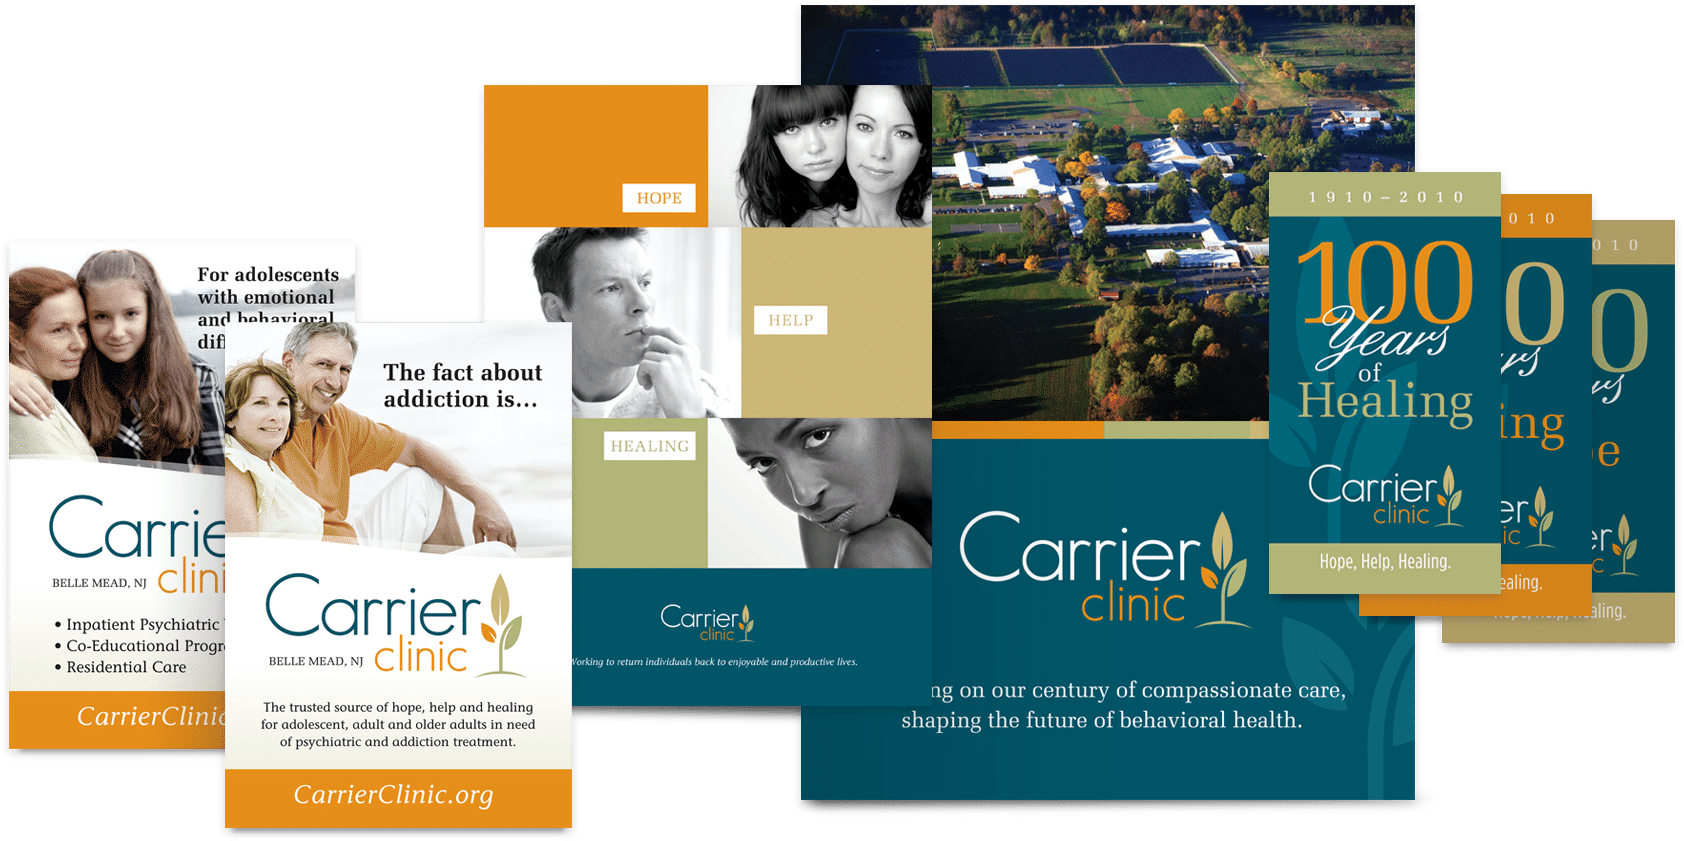 Branding Company in NJ examples of successful collateral design